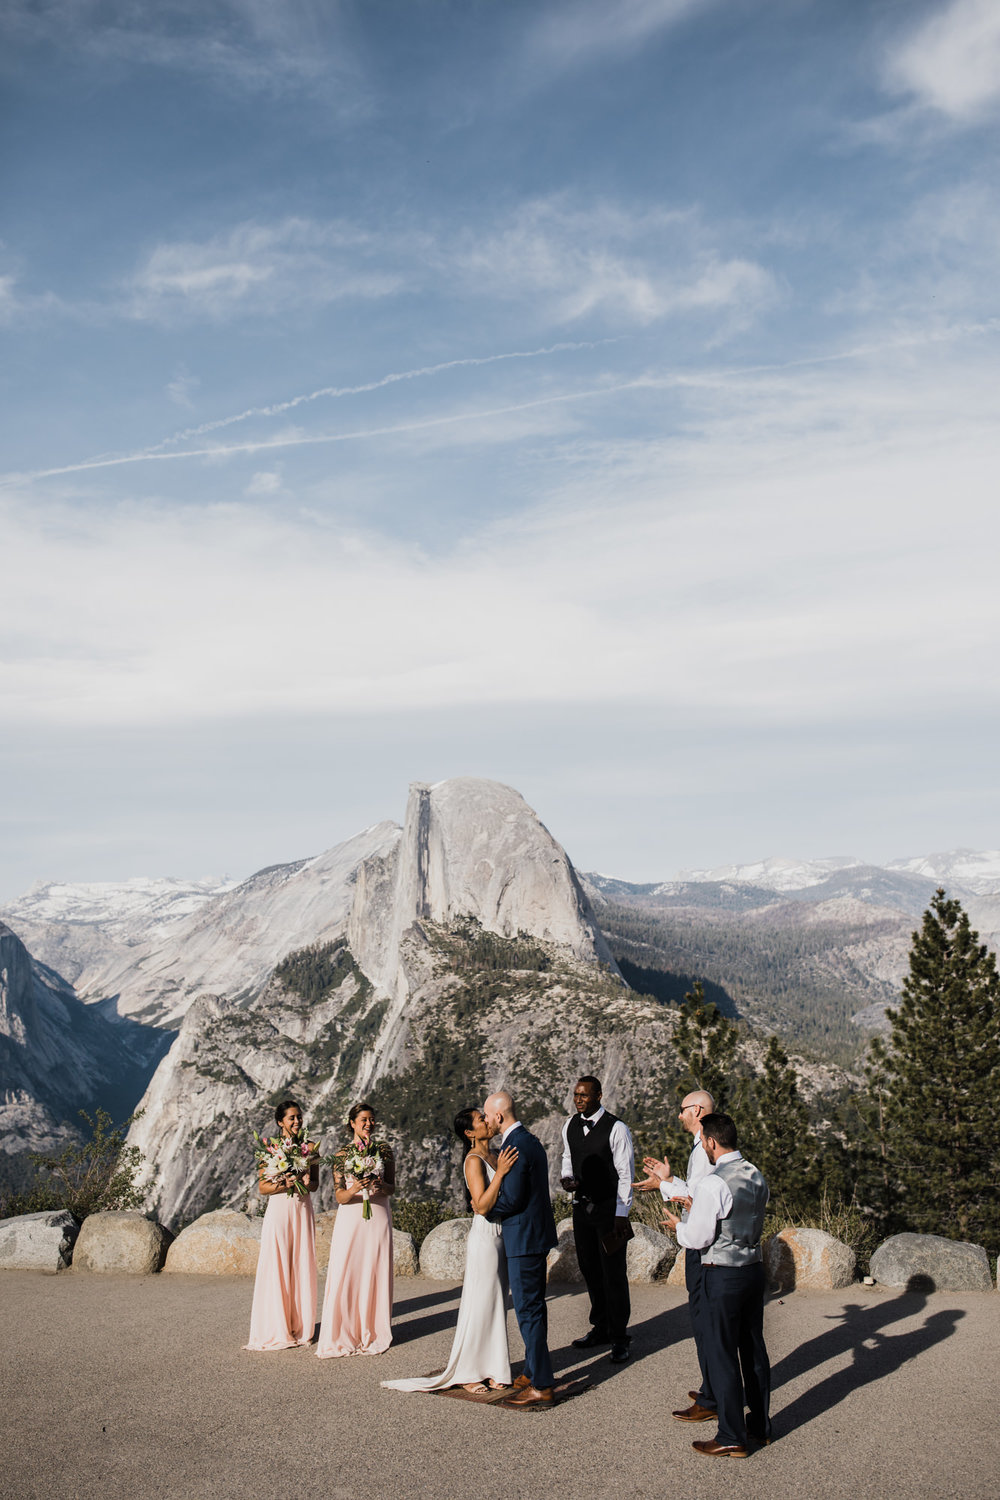 glacier point wedding ceremony in yosemite national park | destination adventure wedding photographers | the hearnes adventure photography | www.thehearnes.com